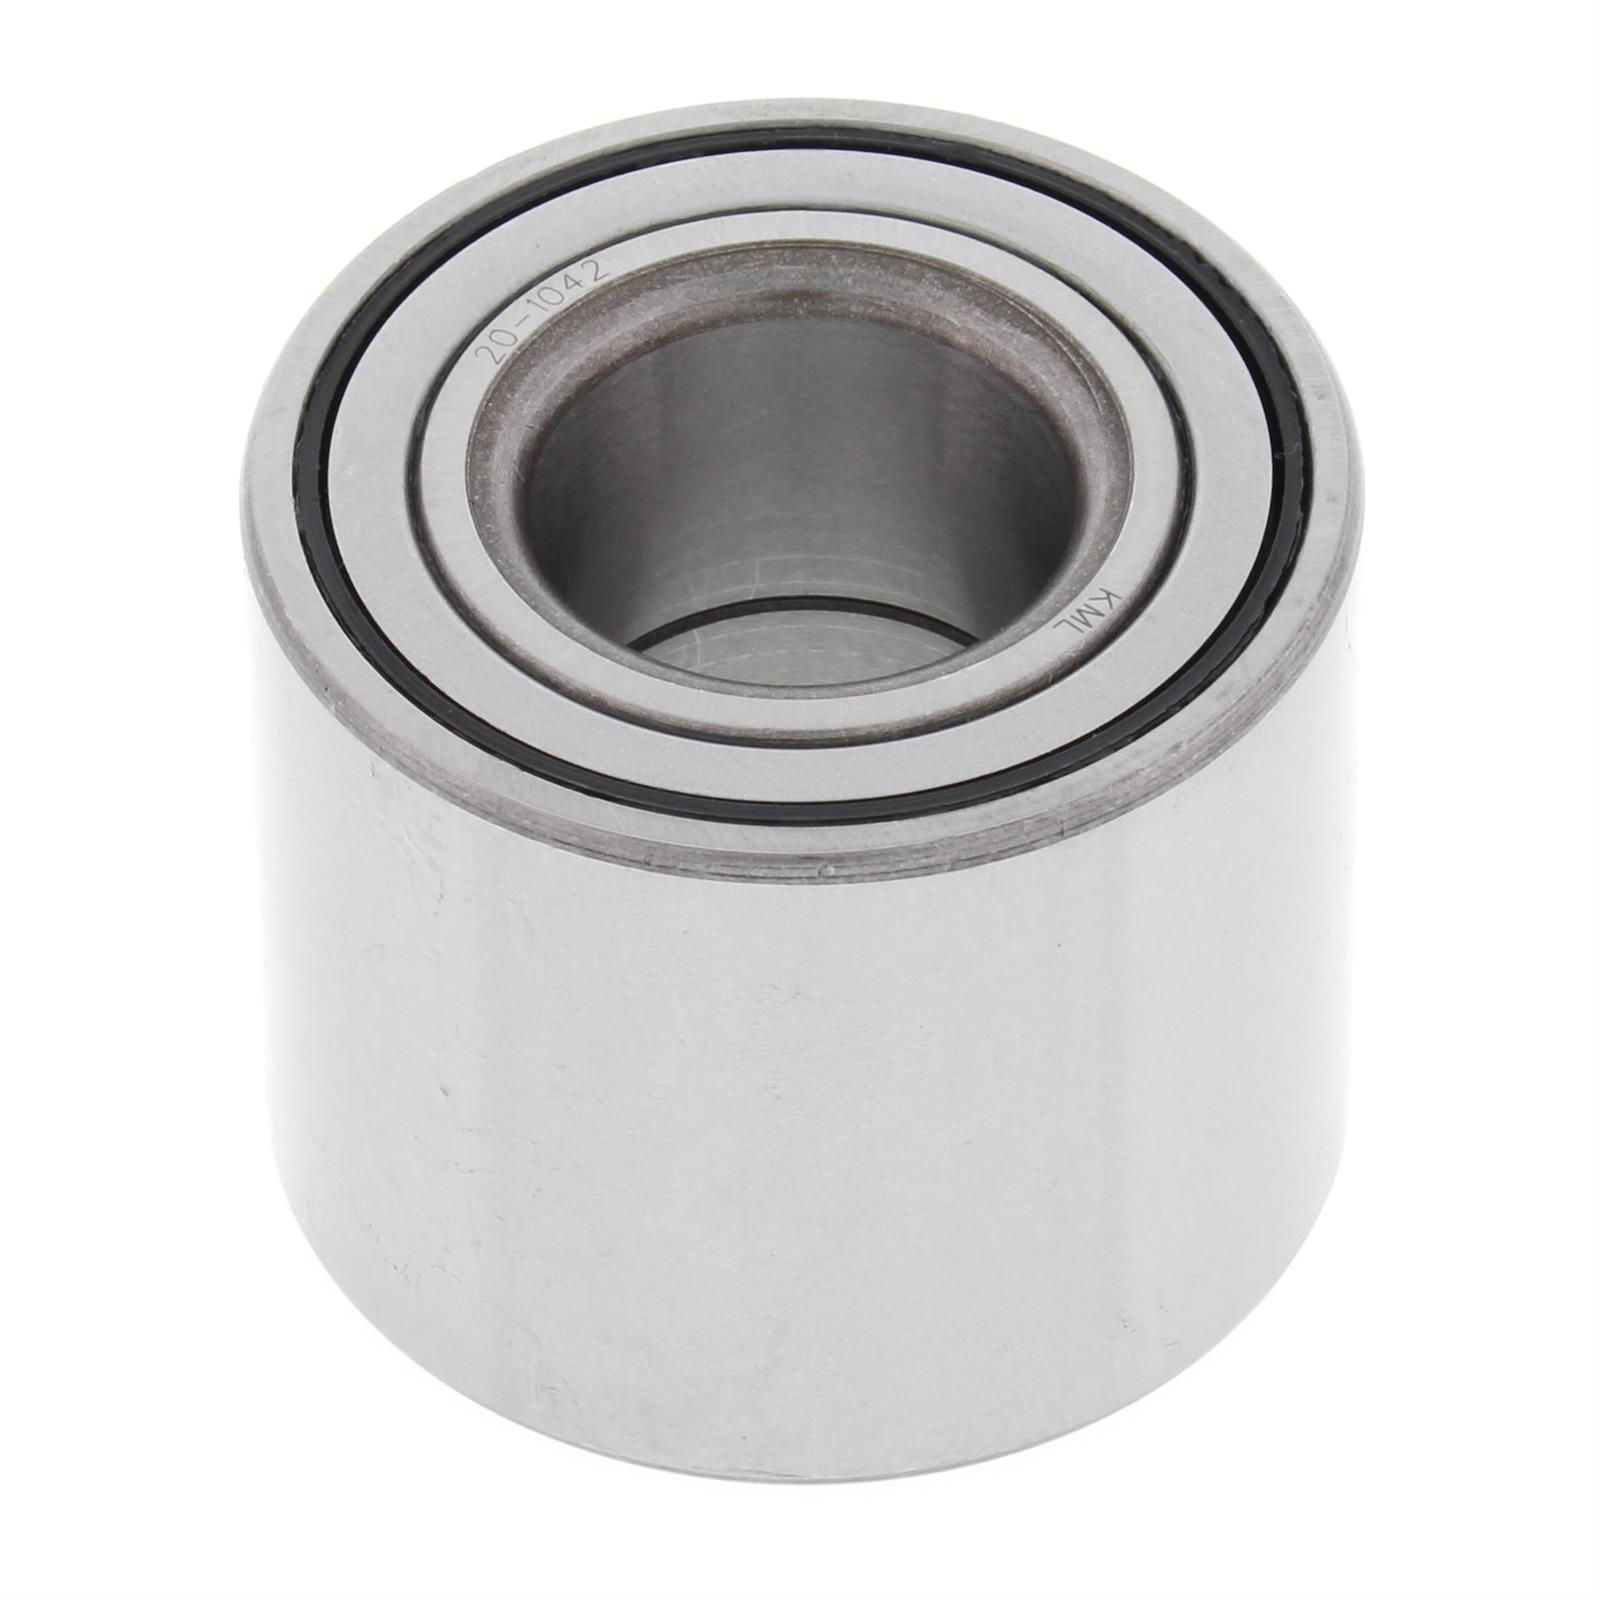 10x15x4 Rubber Sealed Bearing 6700-2RS 10 Units